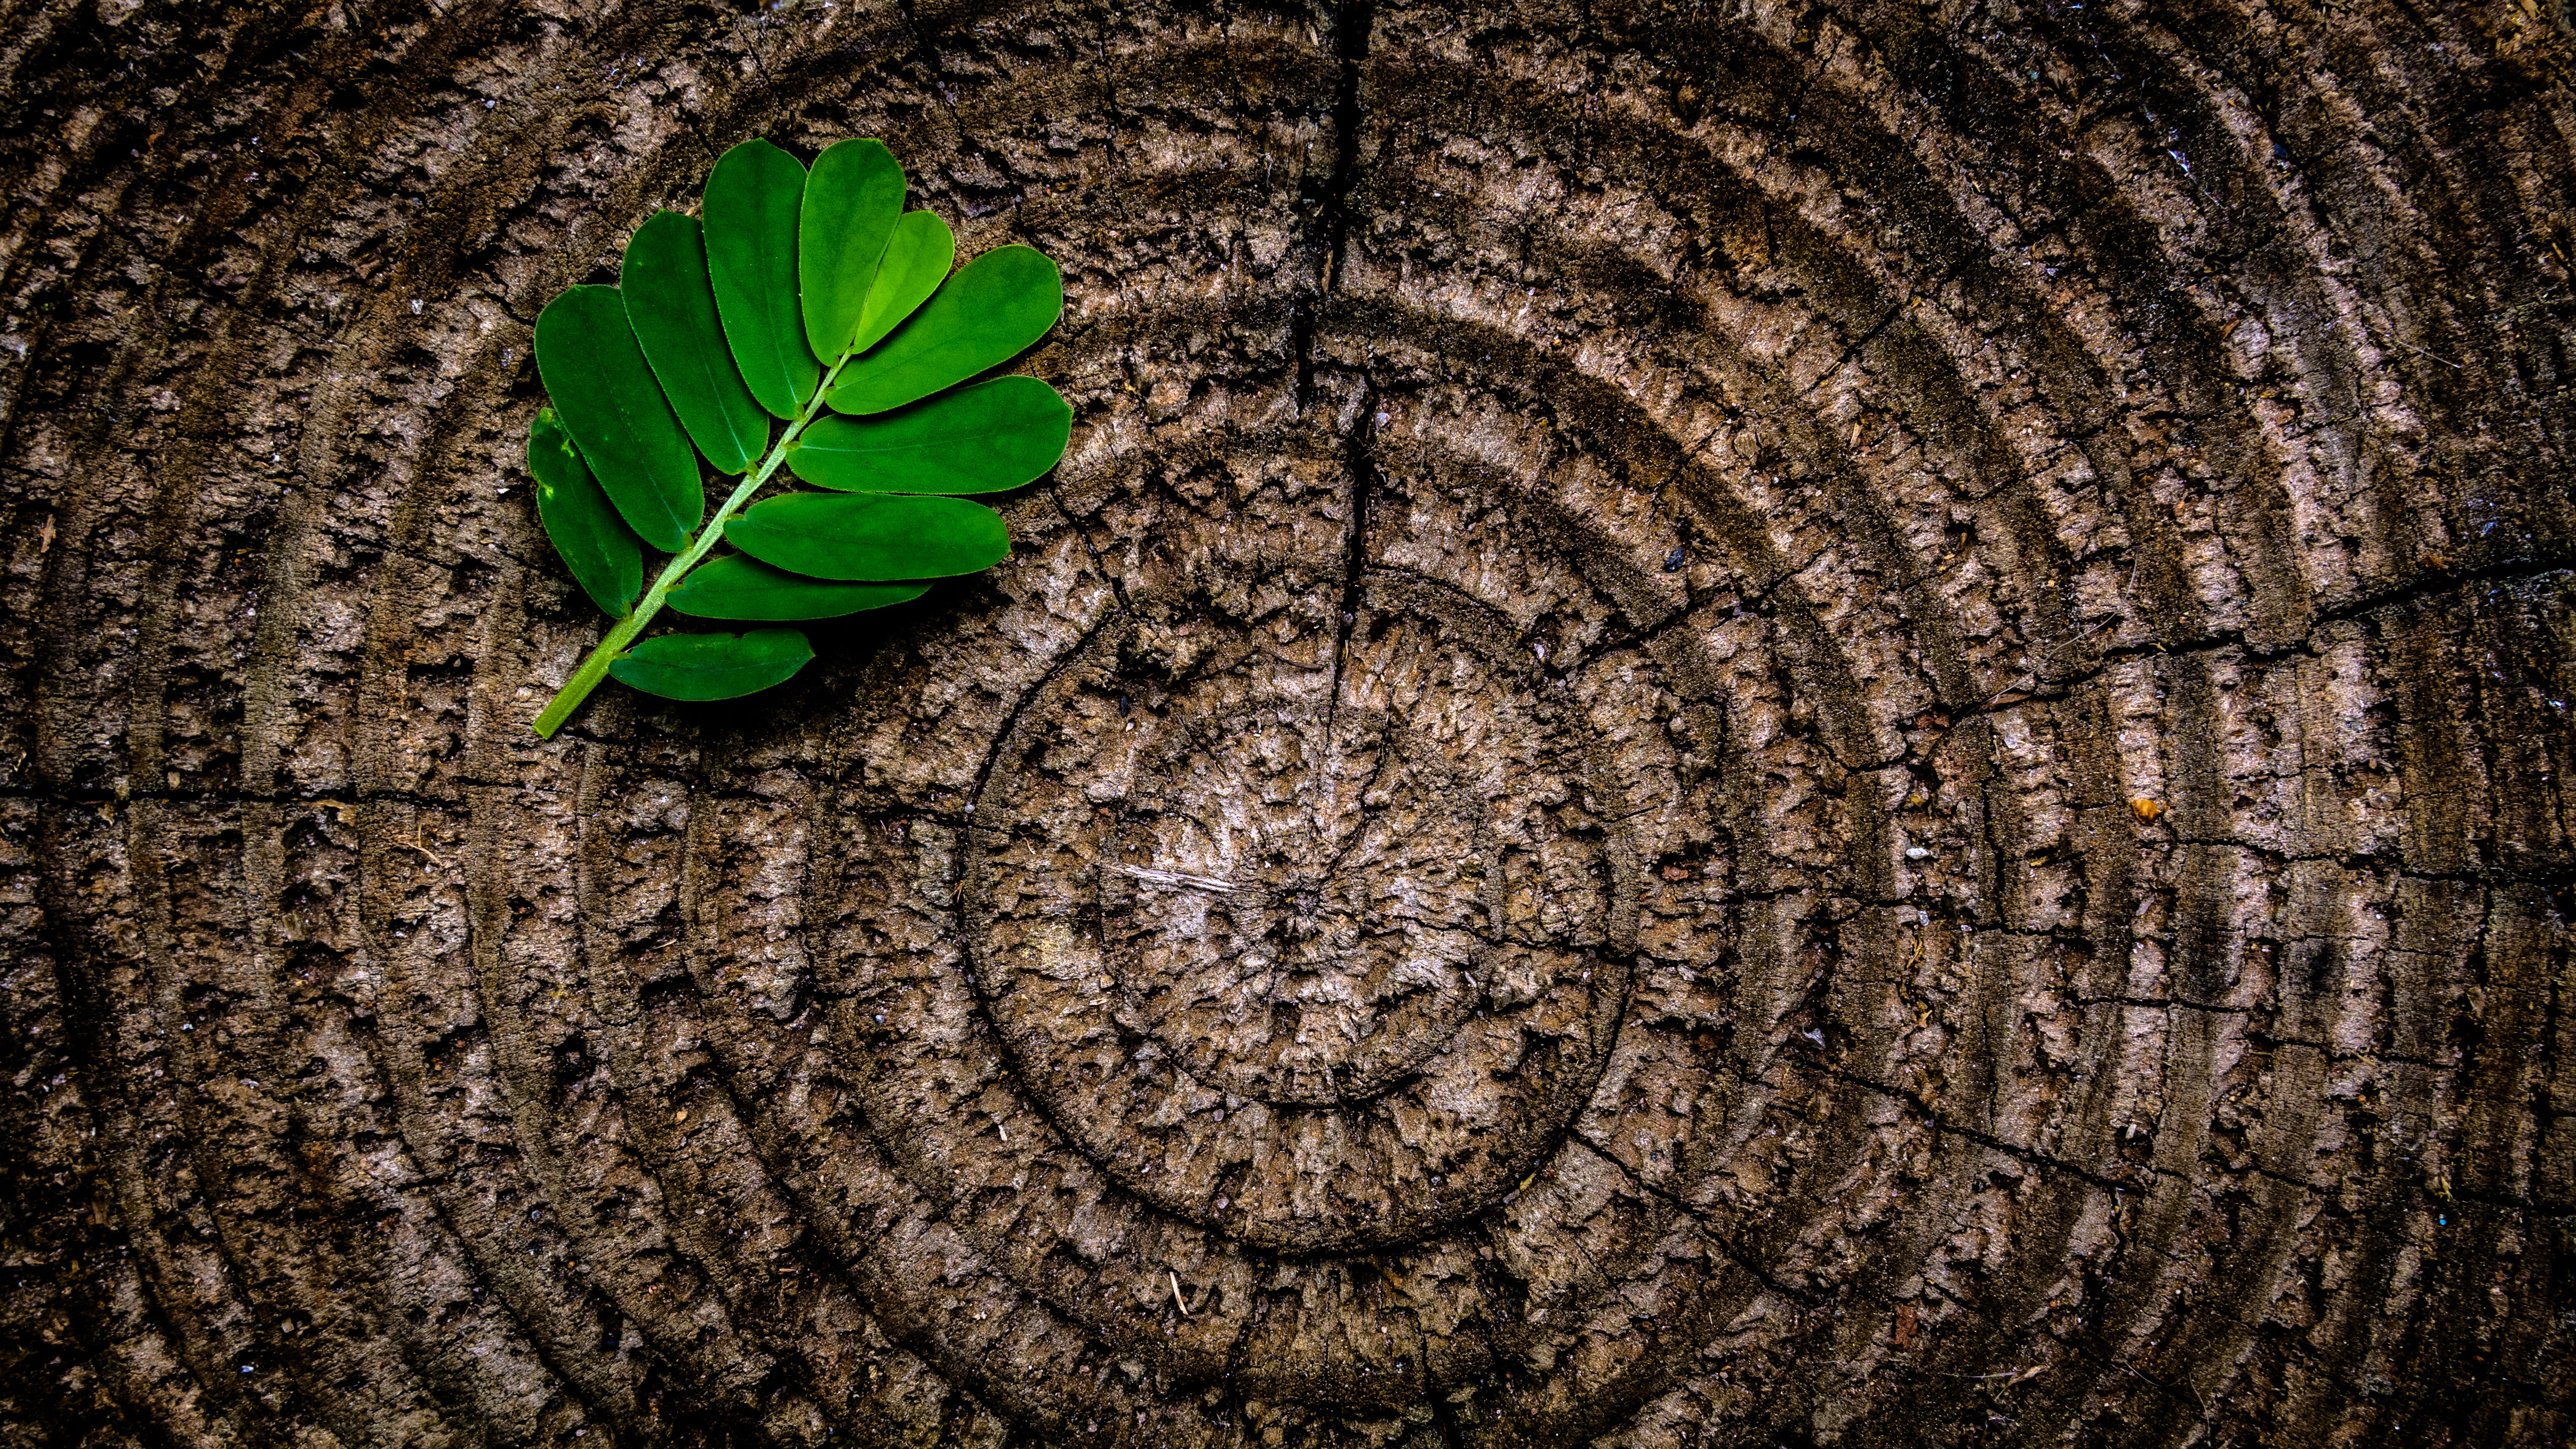 Green Leaf Plant on Brown Wooden Stump, Abstract, Rough, Wood, Trunk, HQ Photo